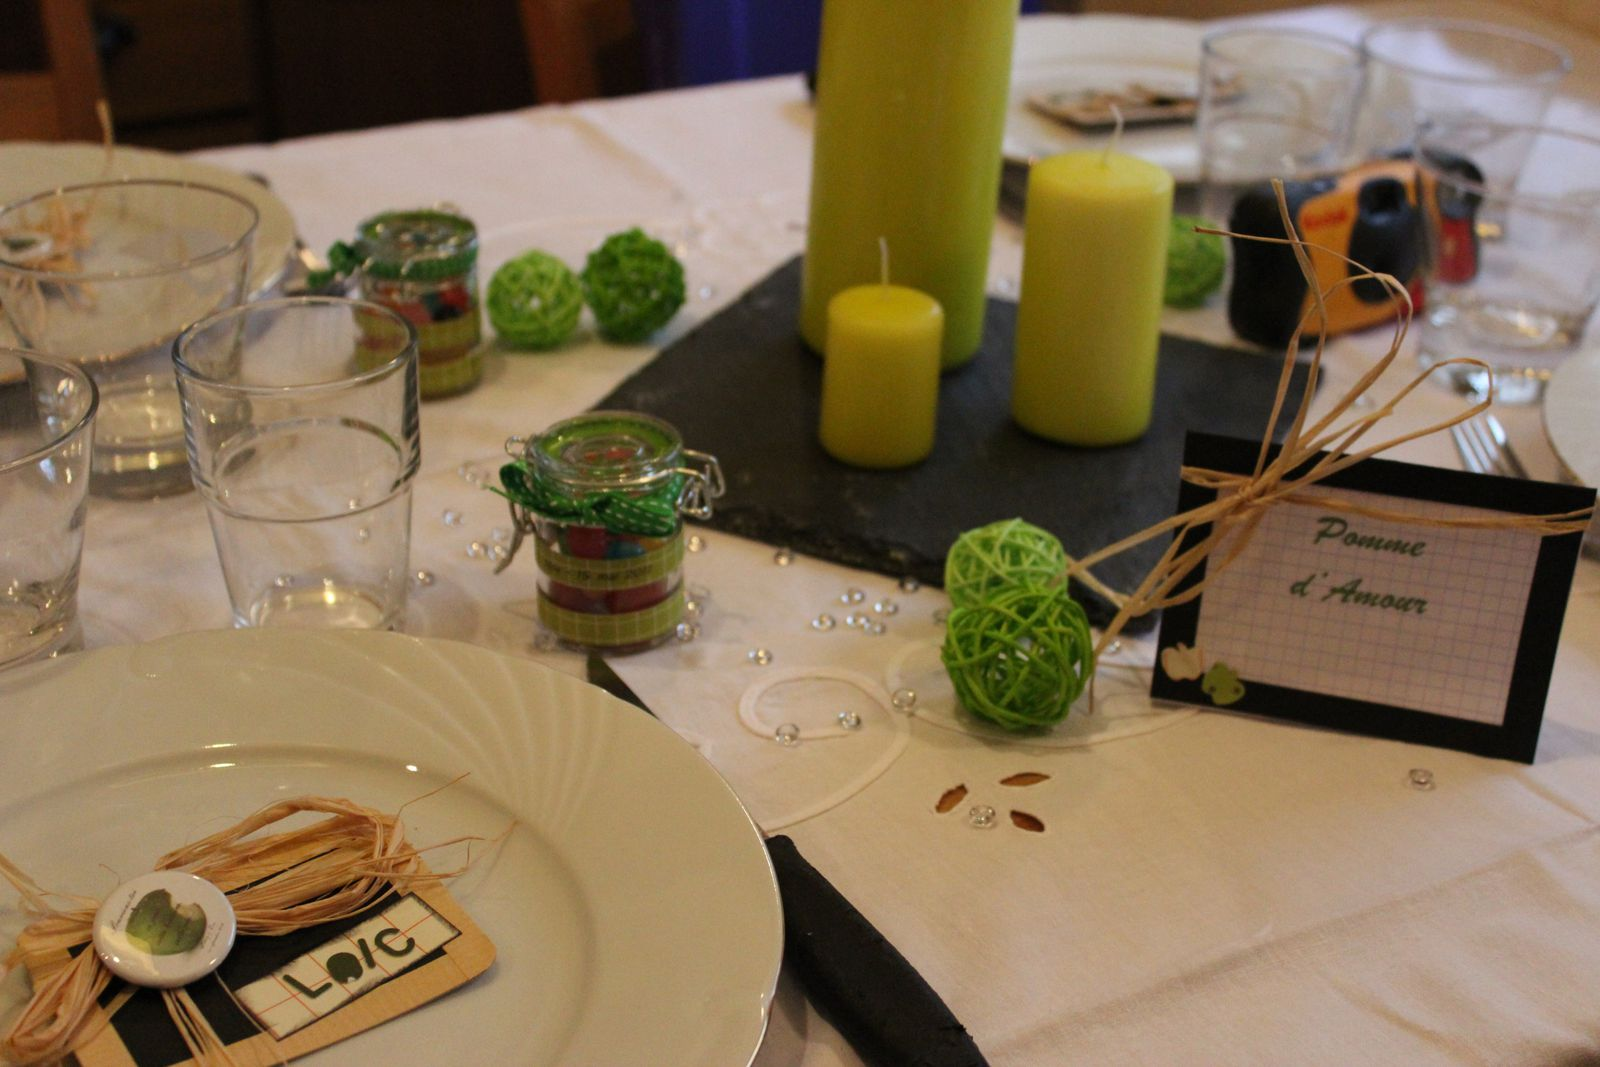 http://luniversdegarfield59.over-blog.com table vert pomme blanc étiquette table mariage